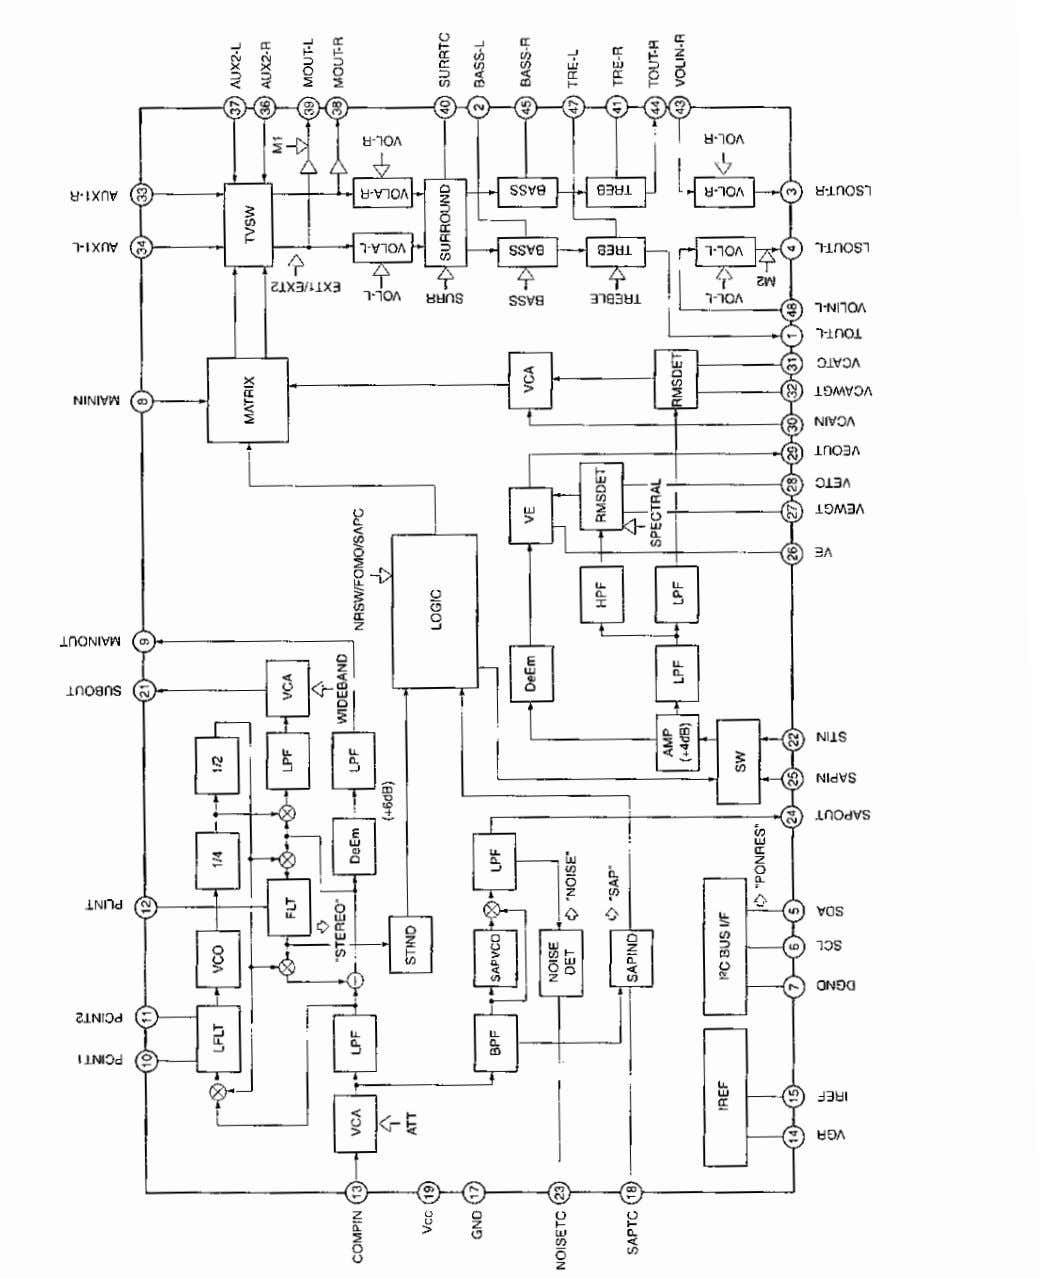 IC Block Diagrams IC3401 <MTS> CXA2234QP -7-